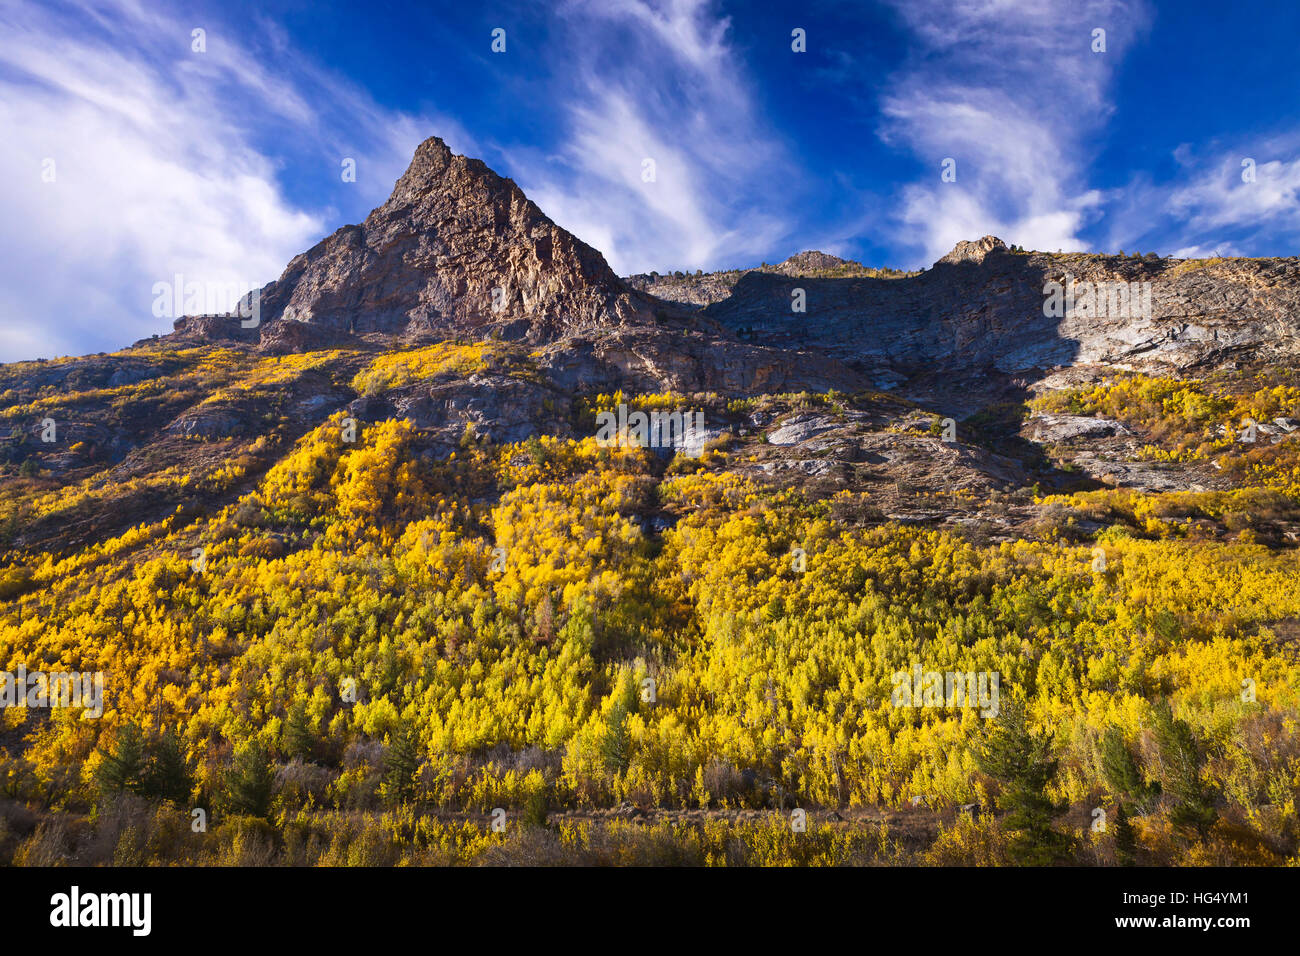 Lamoille Canyon is the largest valley in the Ruby Mountains, located in the central portion of Elko County in the - Stock Image